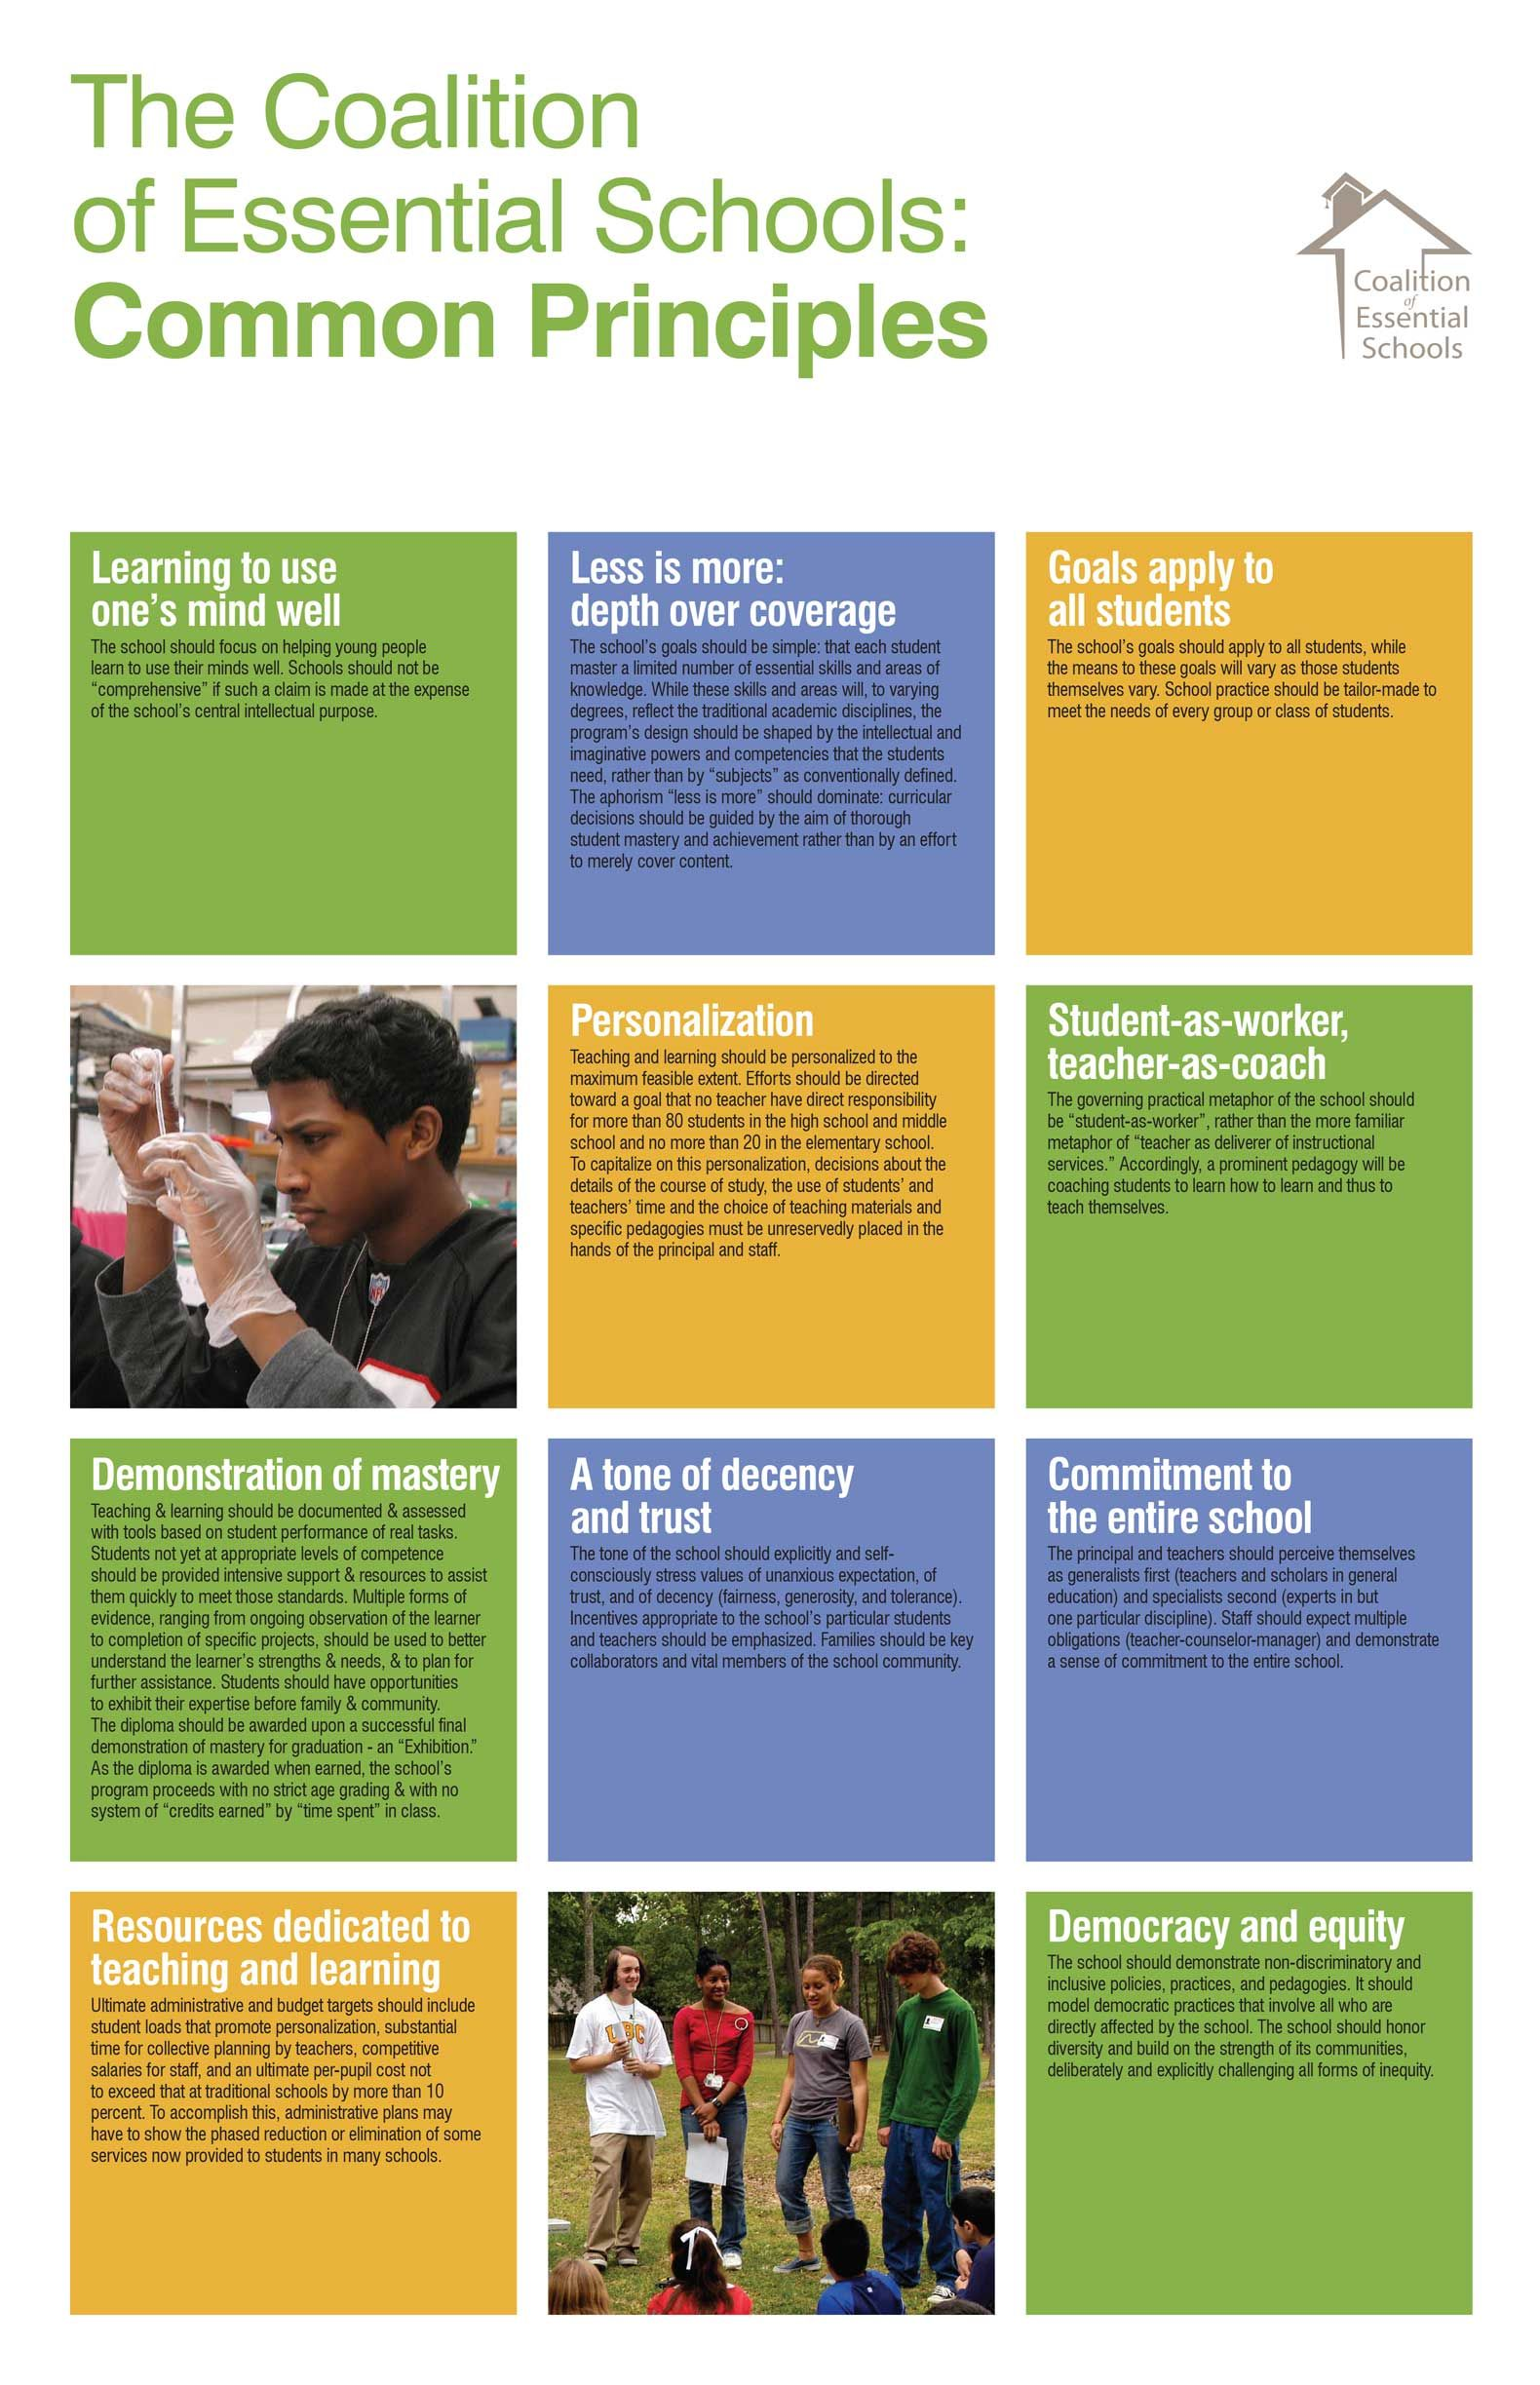 The 10 Common Principles of the Coalition of Essential Schools